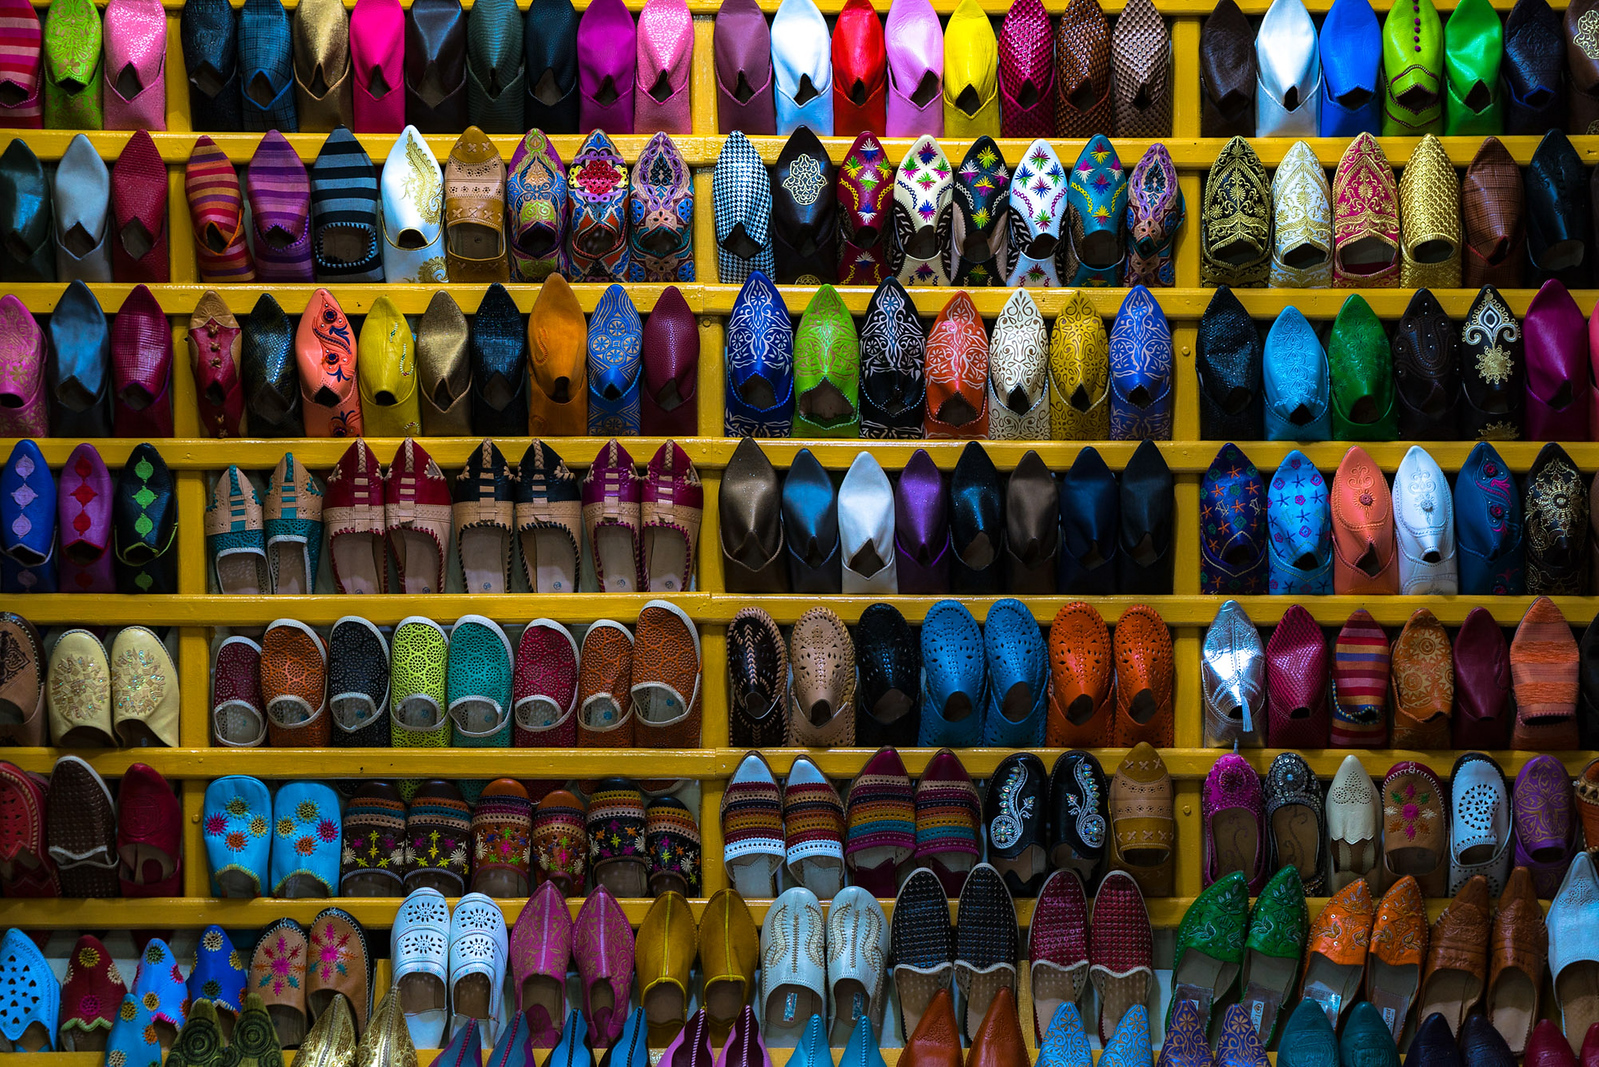 Moroccan shoes in bright colors - cycling vacation and photography tour with Kevin Wenning